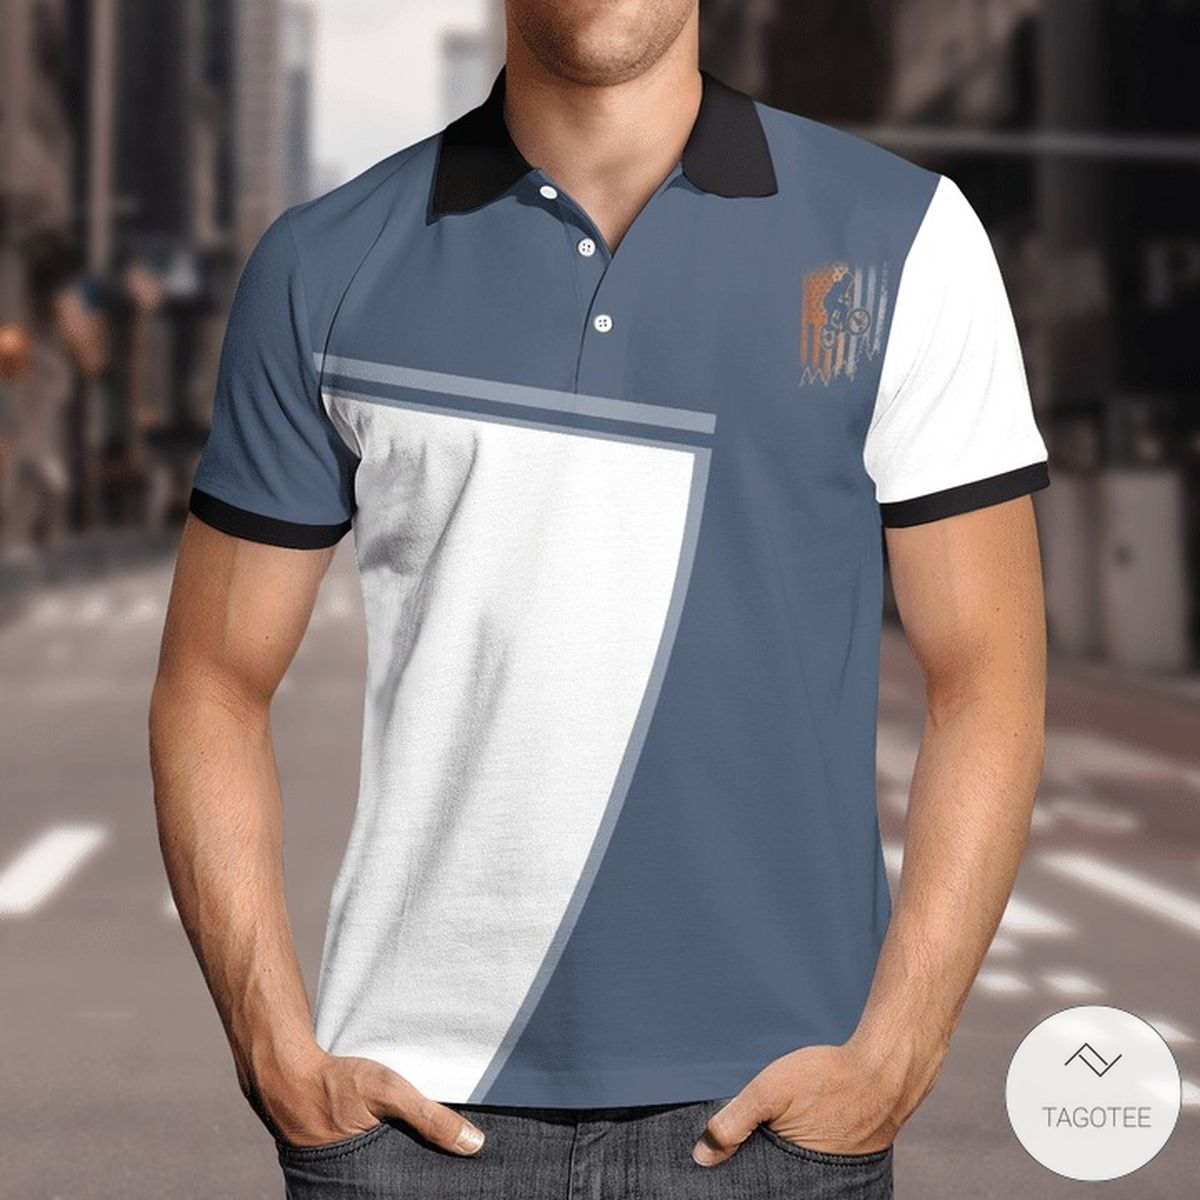 My Life Is Going Downhill Polo Shirt